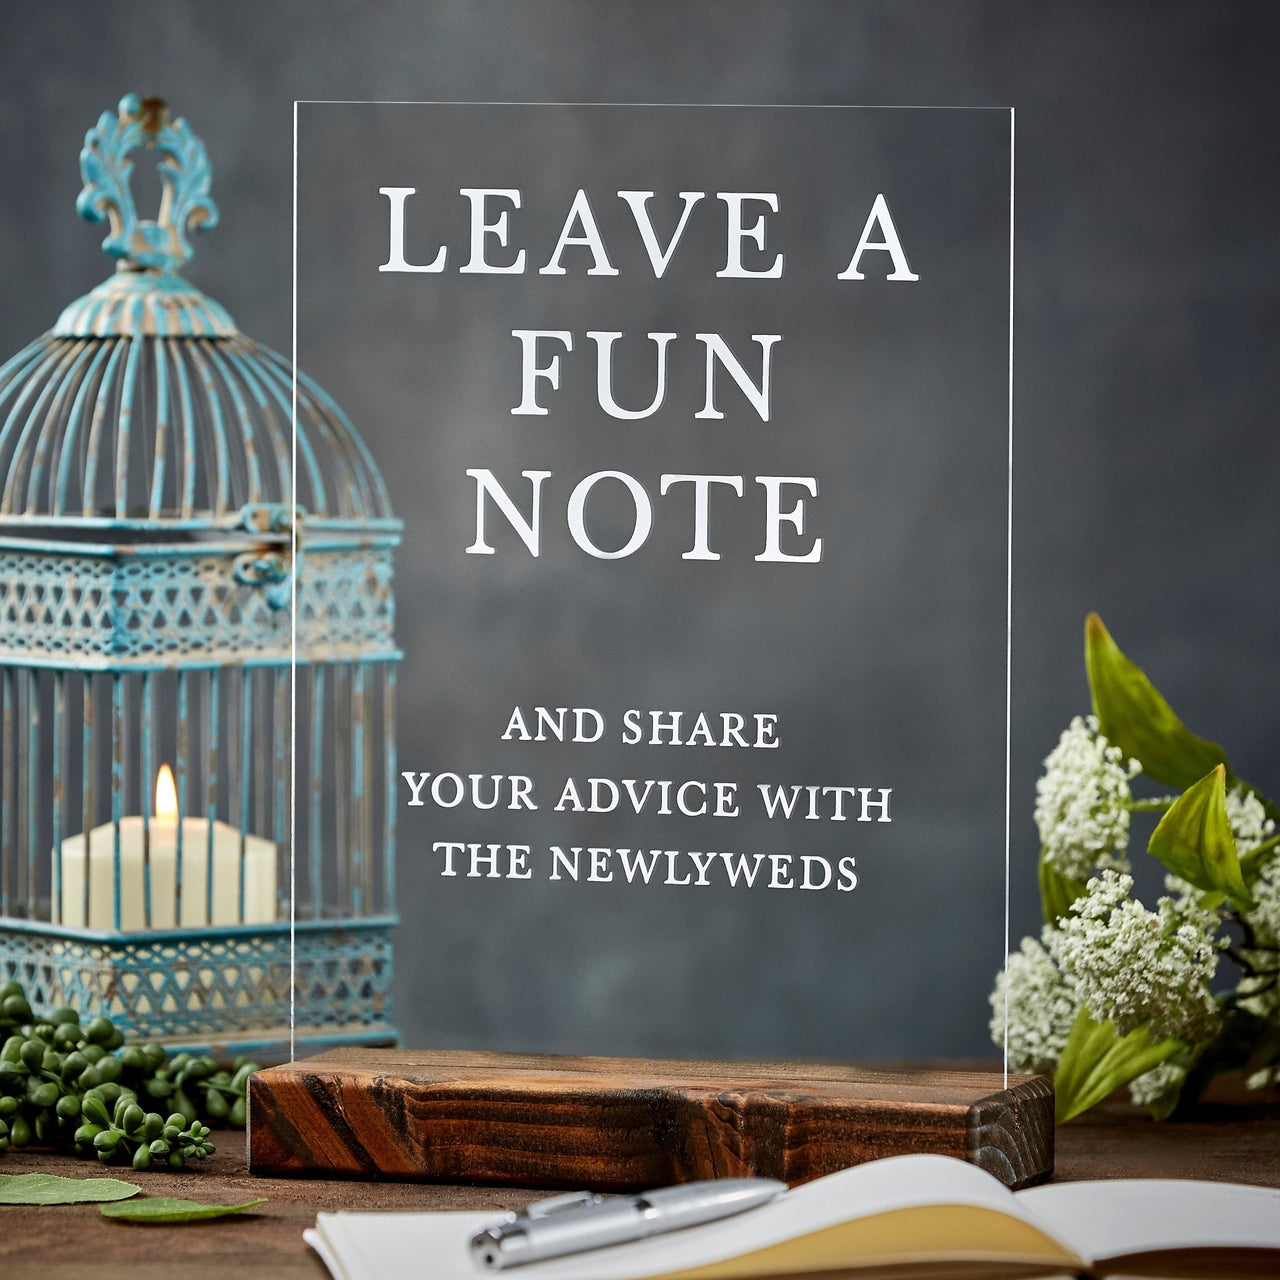 Leave a Fun Note Advice For the Newlyweds Acrylic Wedding Sign - Rich Design Co